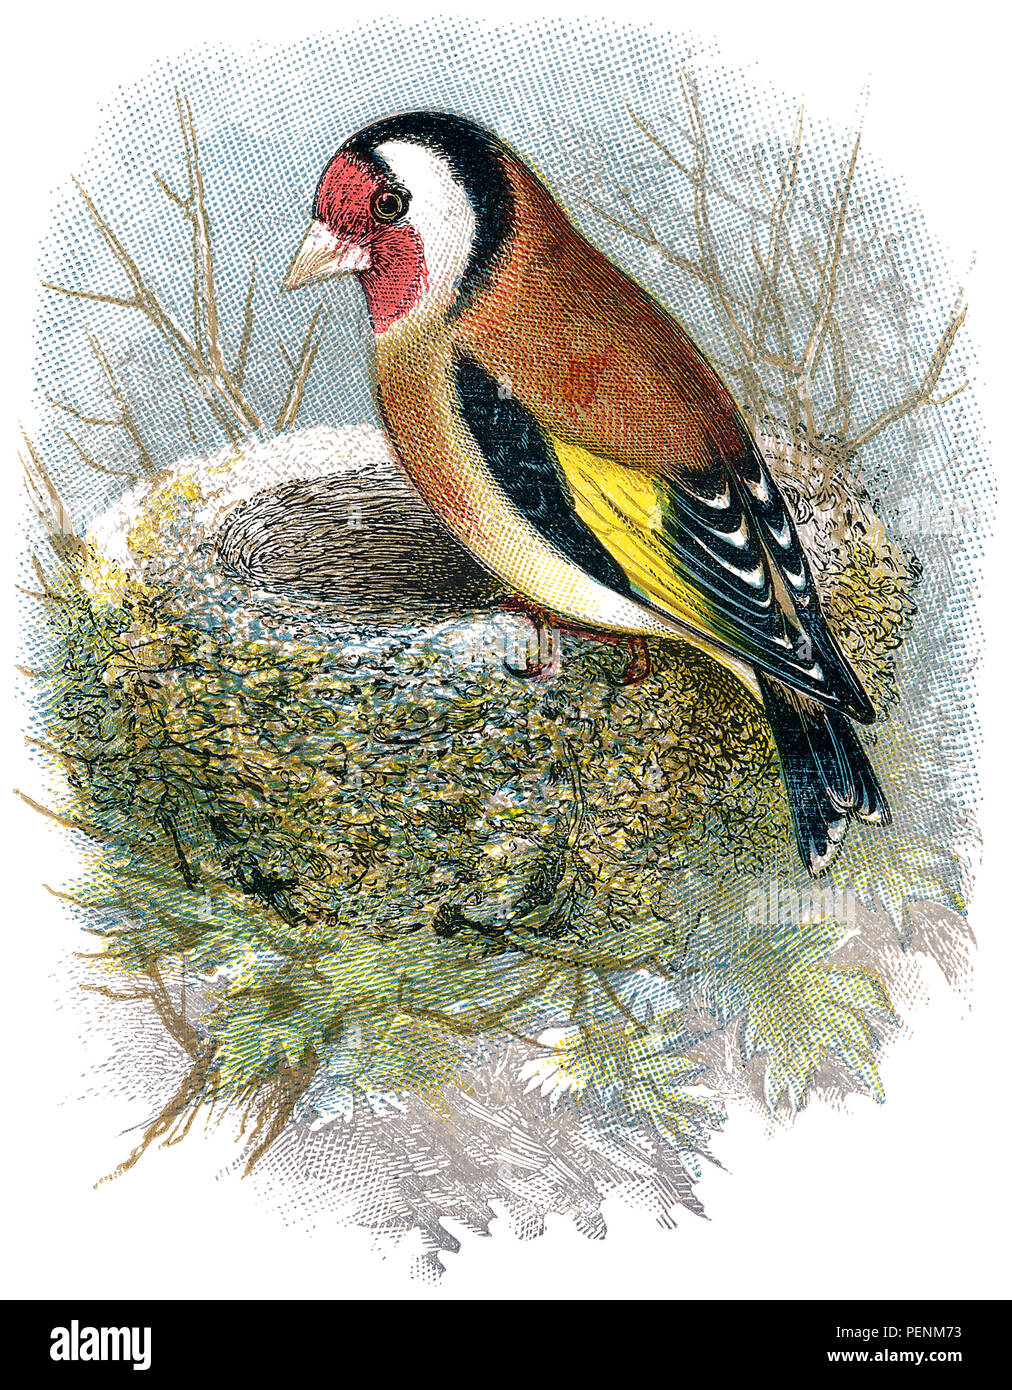 1898 colour engraving of a European goldfinch (Carduelis carduelis) and its nest. - Stock Image